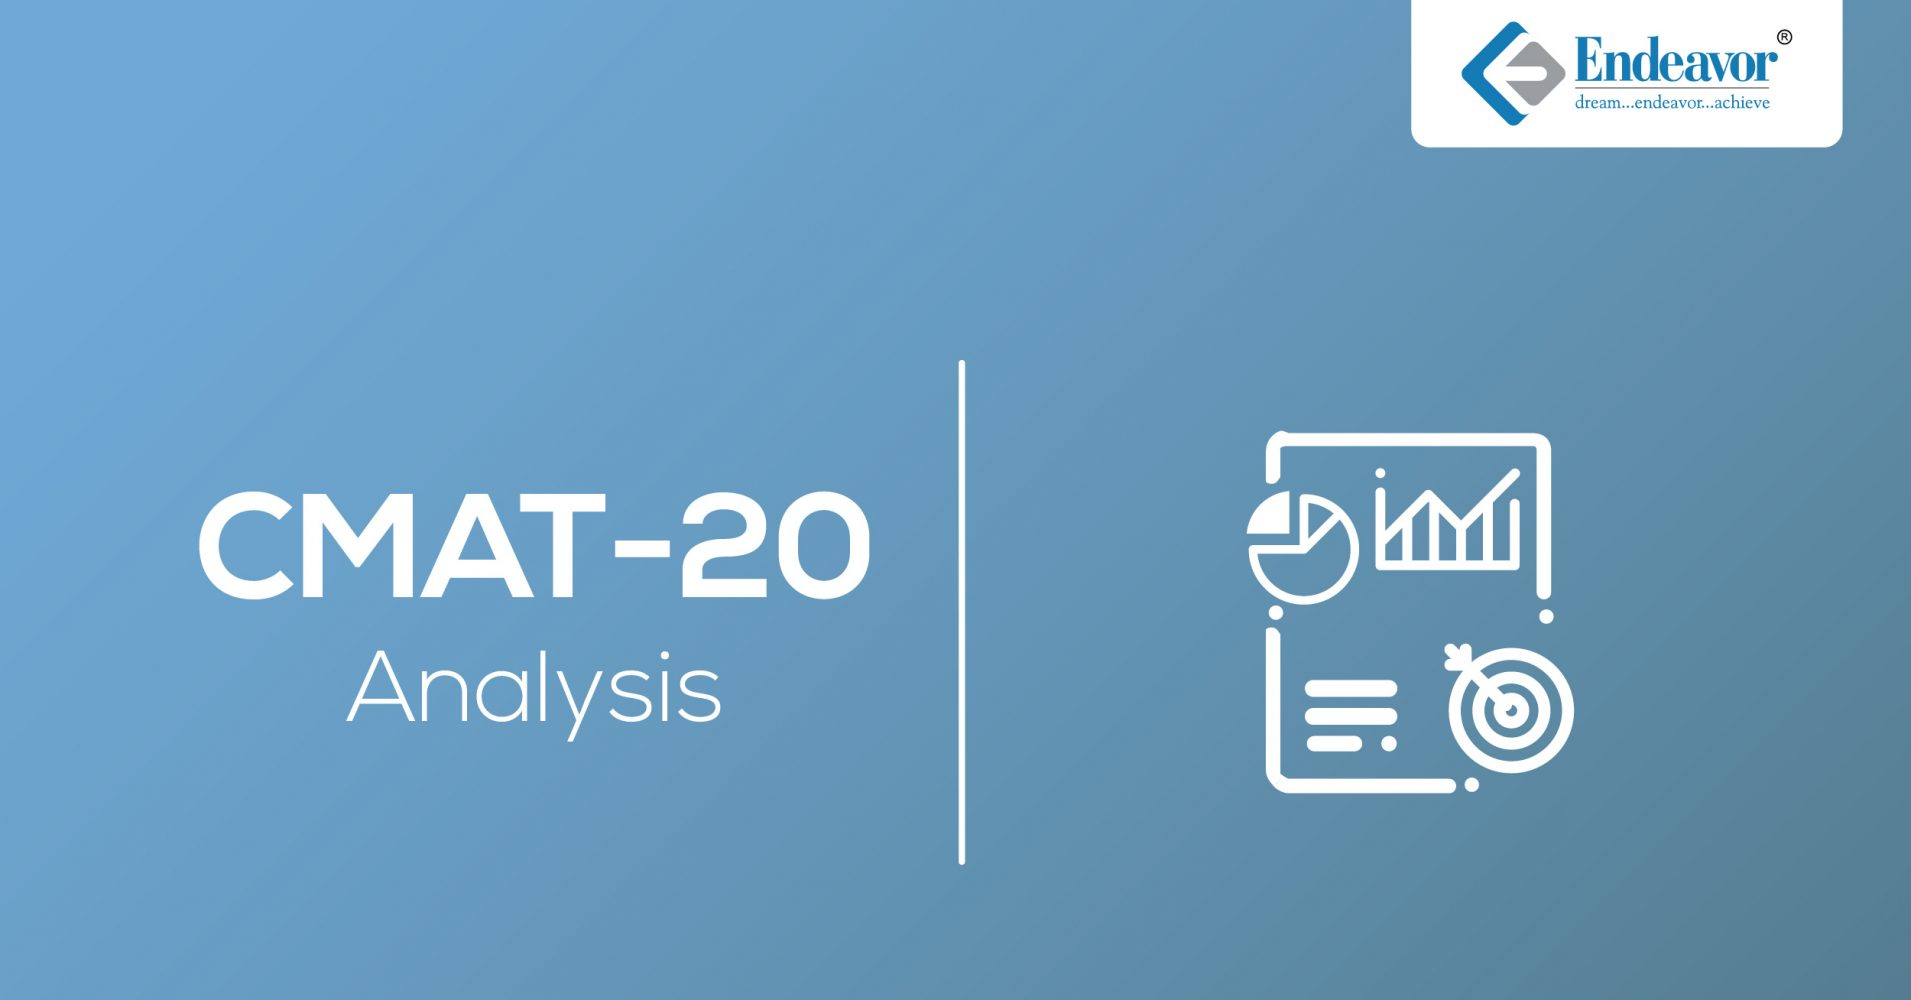 CMAT 2020 Exam Analysis